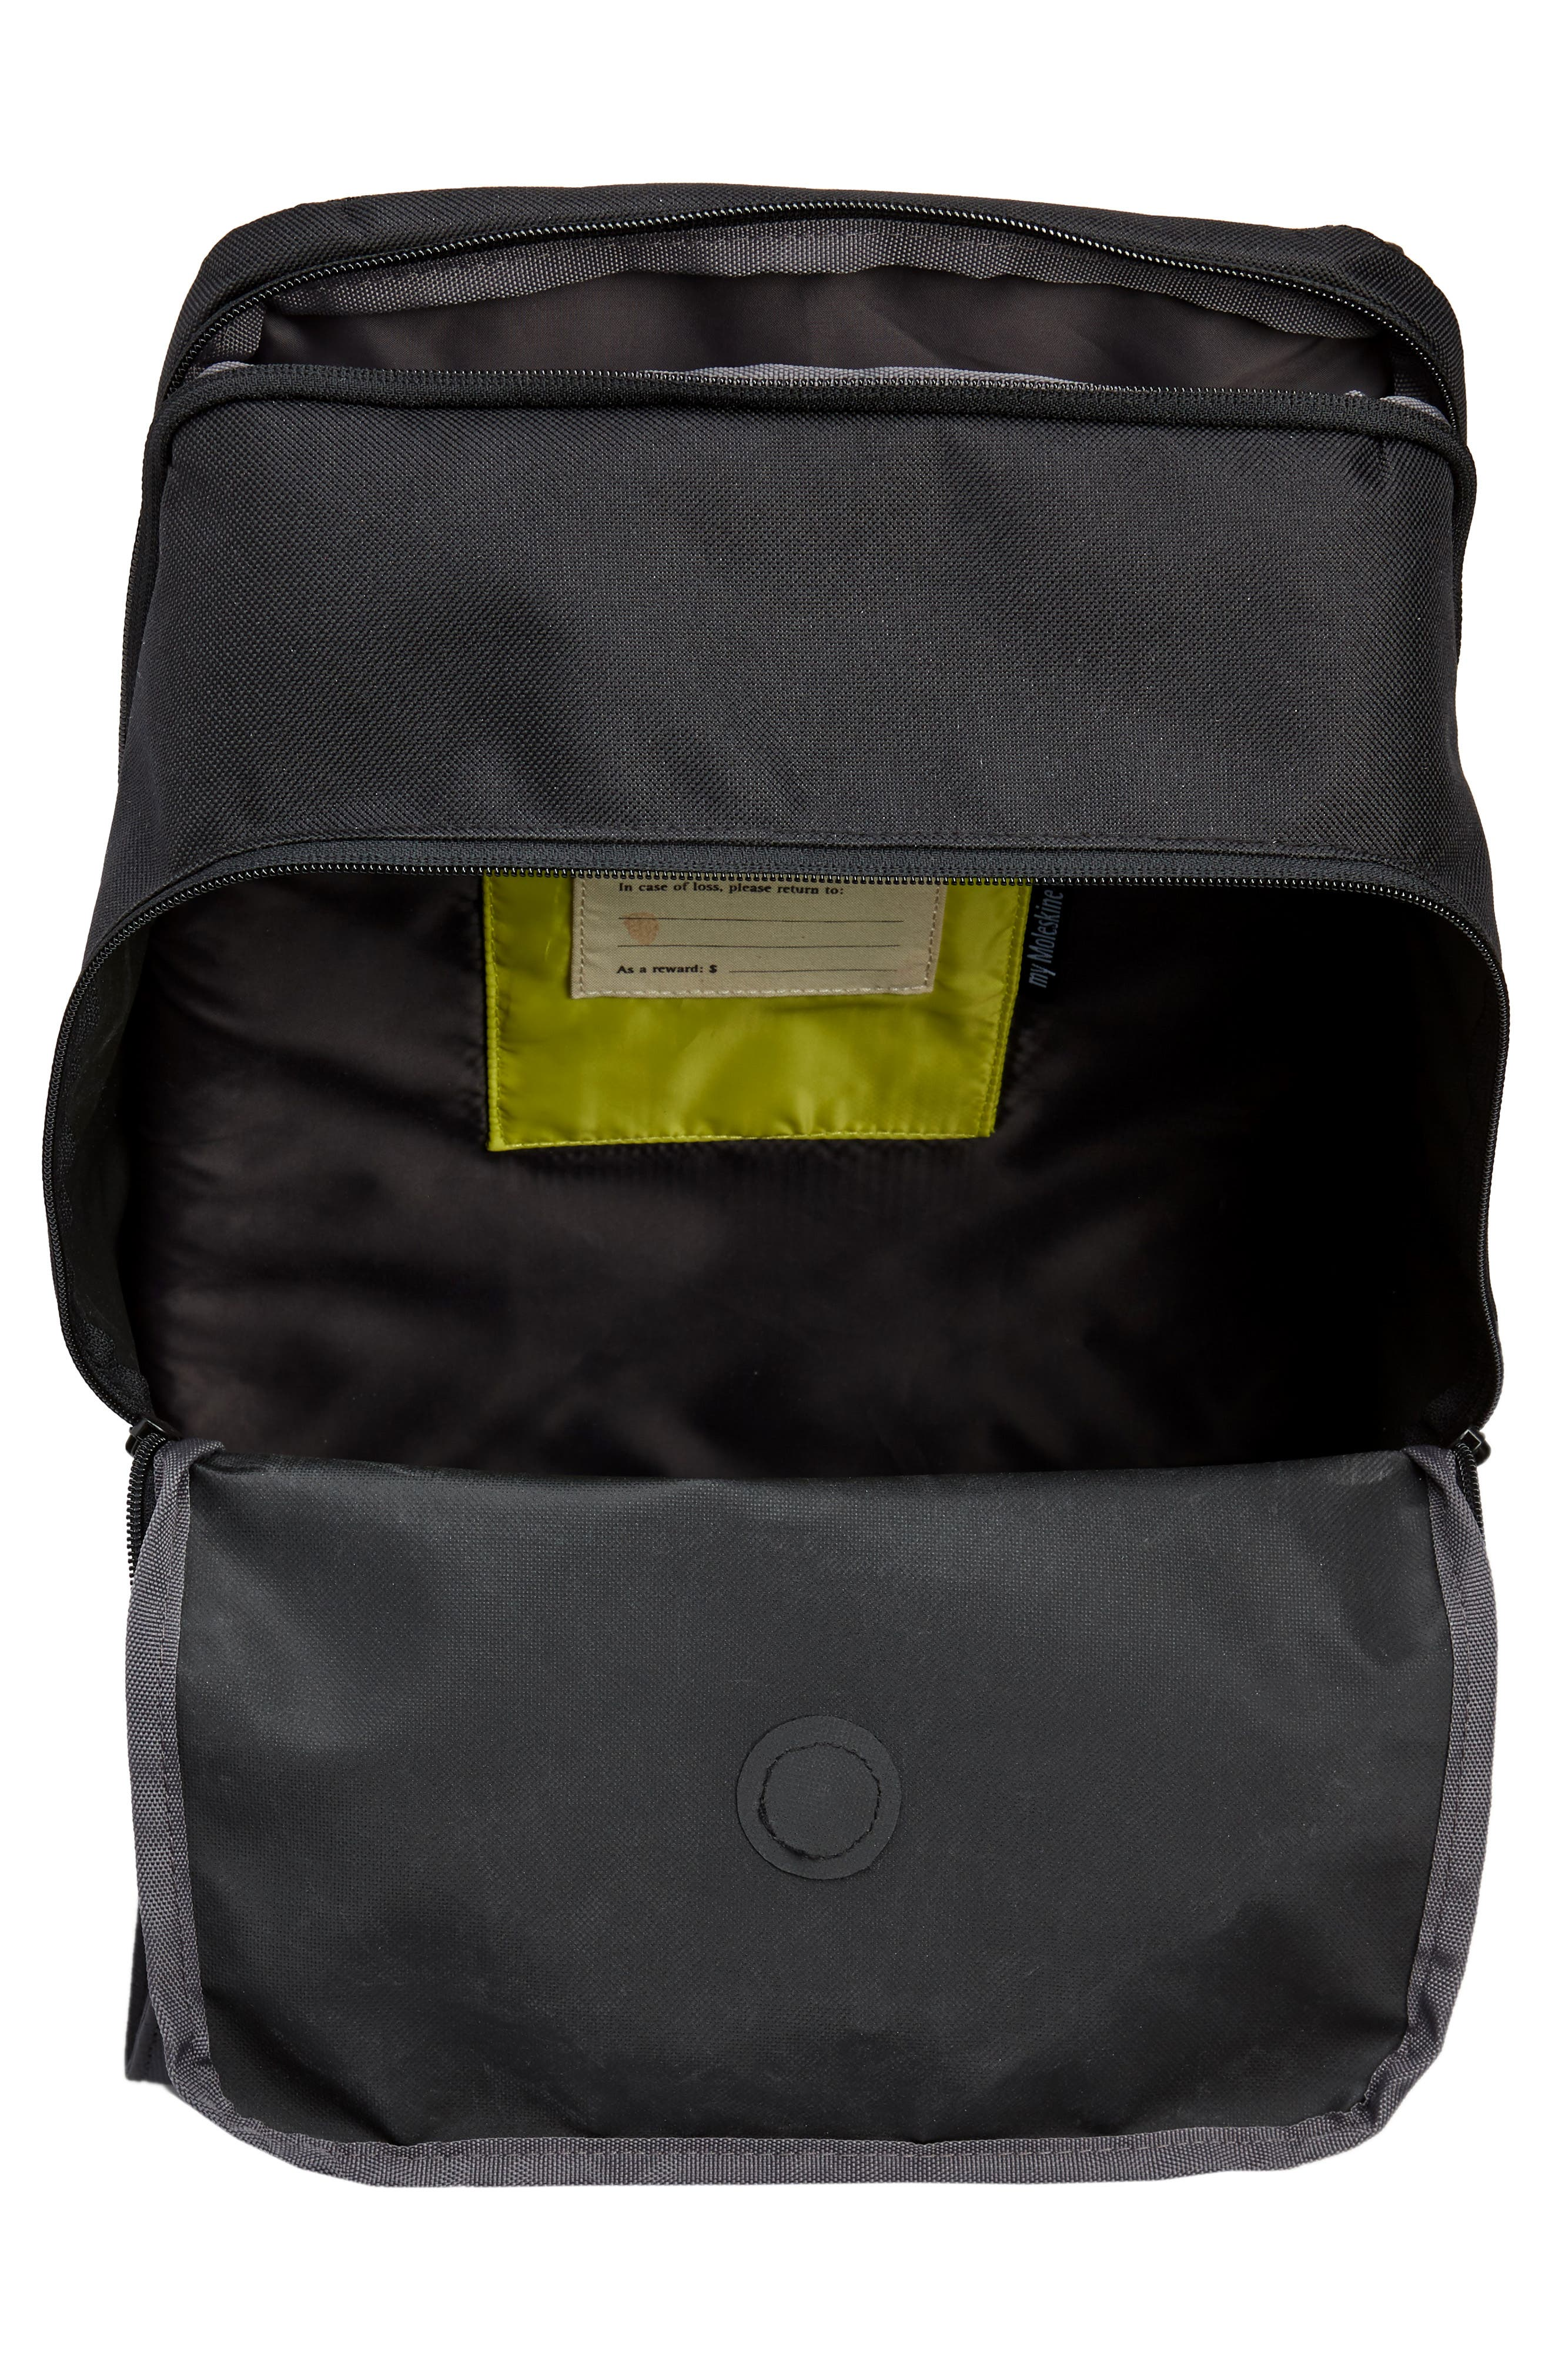 Nomad Water Resistant Backpack,                             Alternate thumbnail 4, color,                             001